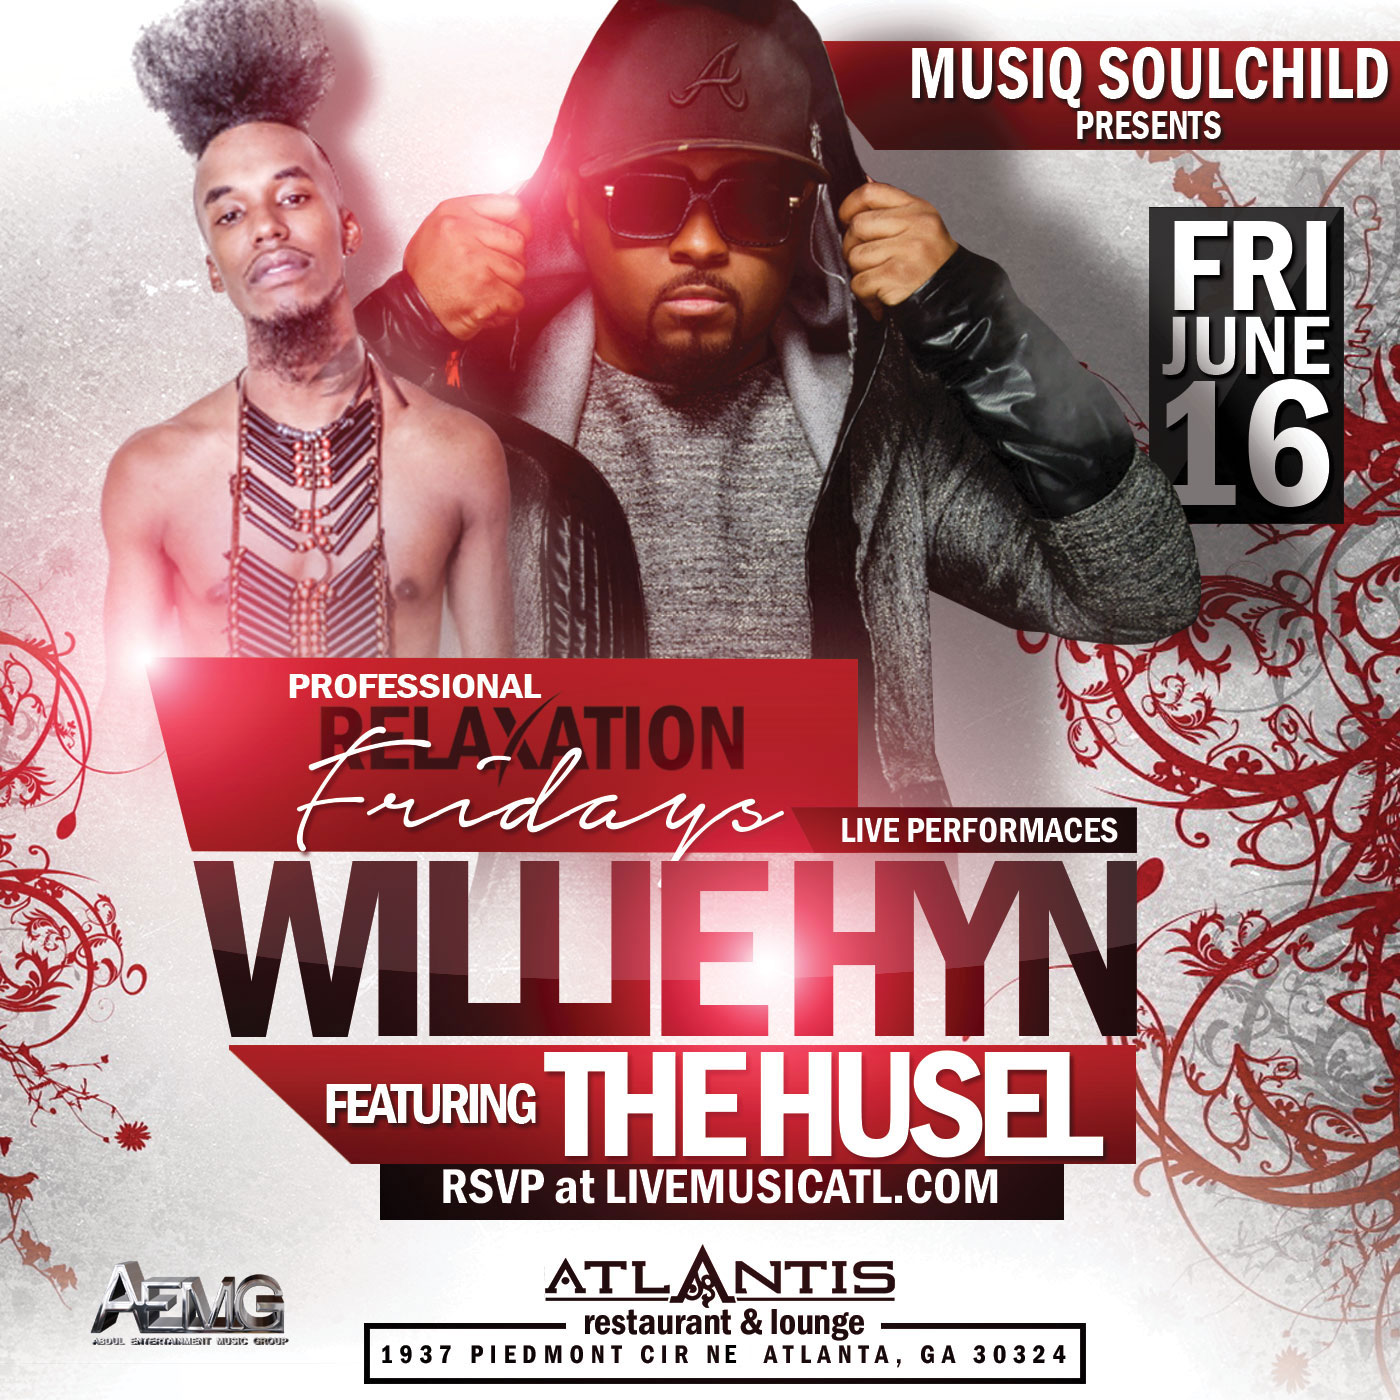 ATLANTIS---Musiq-Soulchild-FINAL-updated-61117